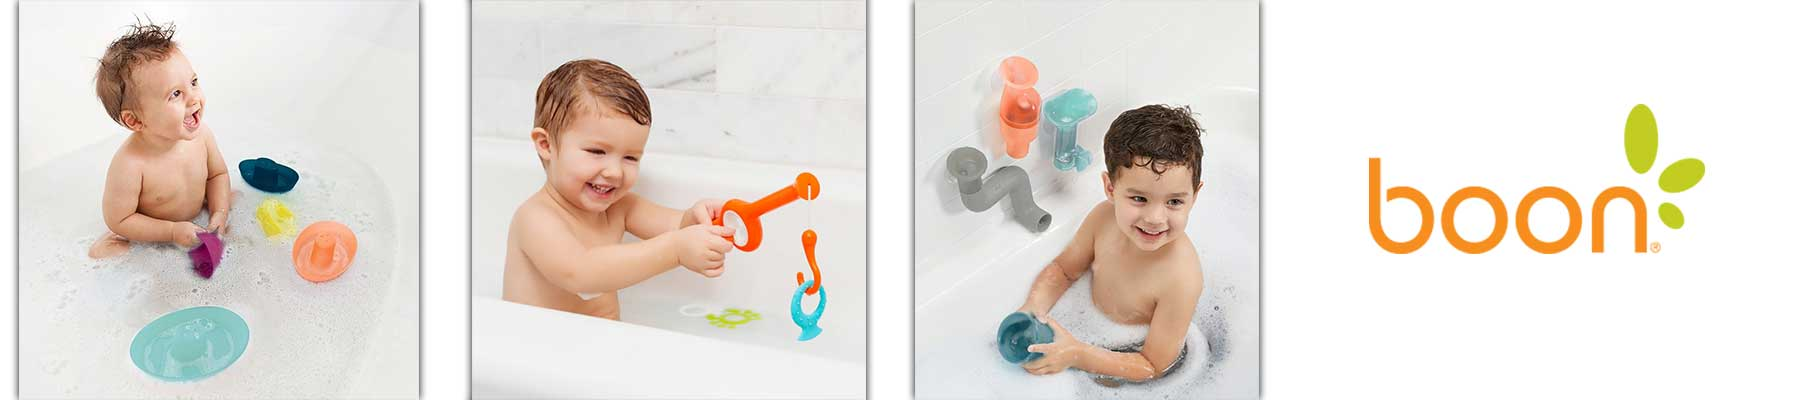 Shop for Boon products ranging from bath tubs, bath mats, bath toys, bottle warmers, drying racks etc.